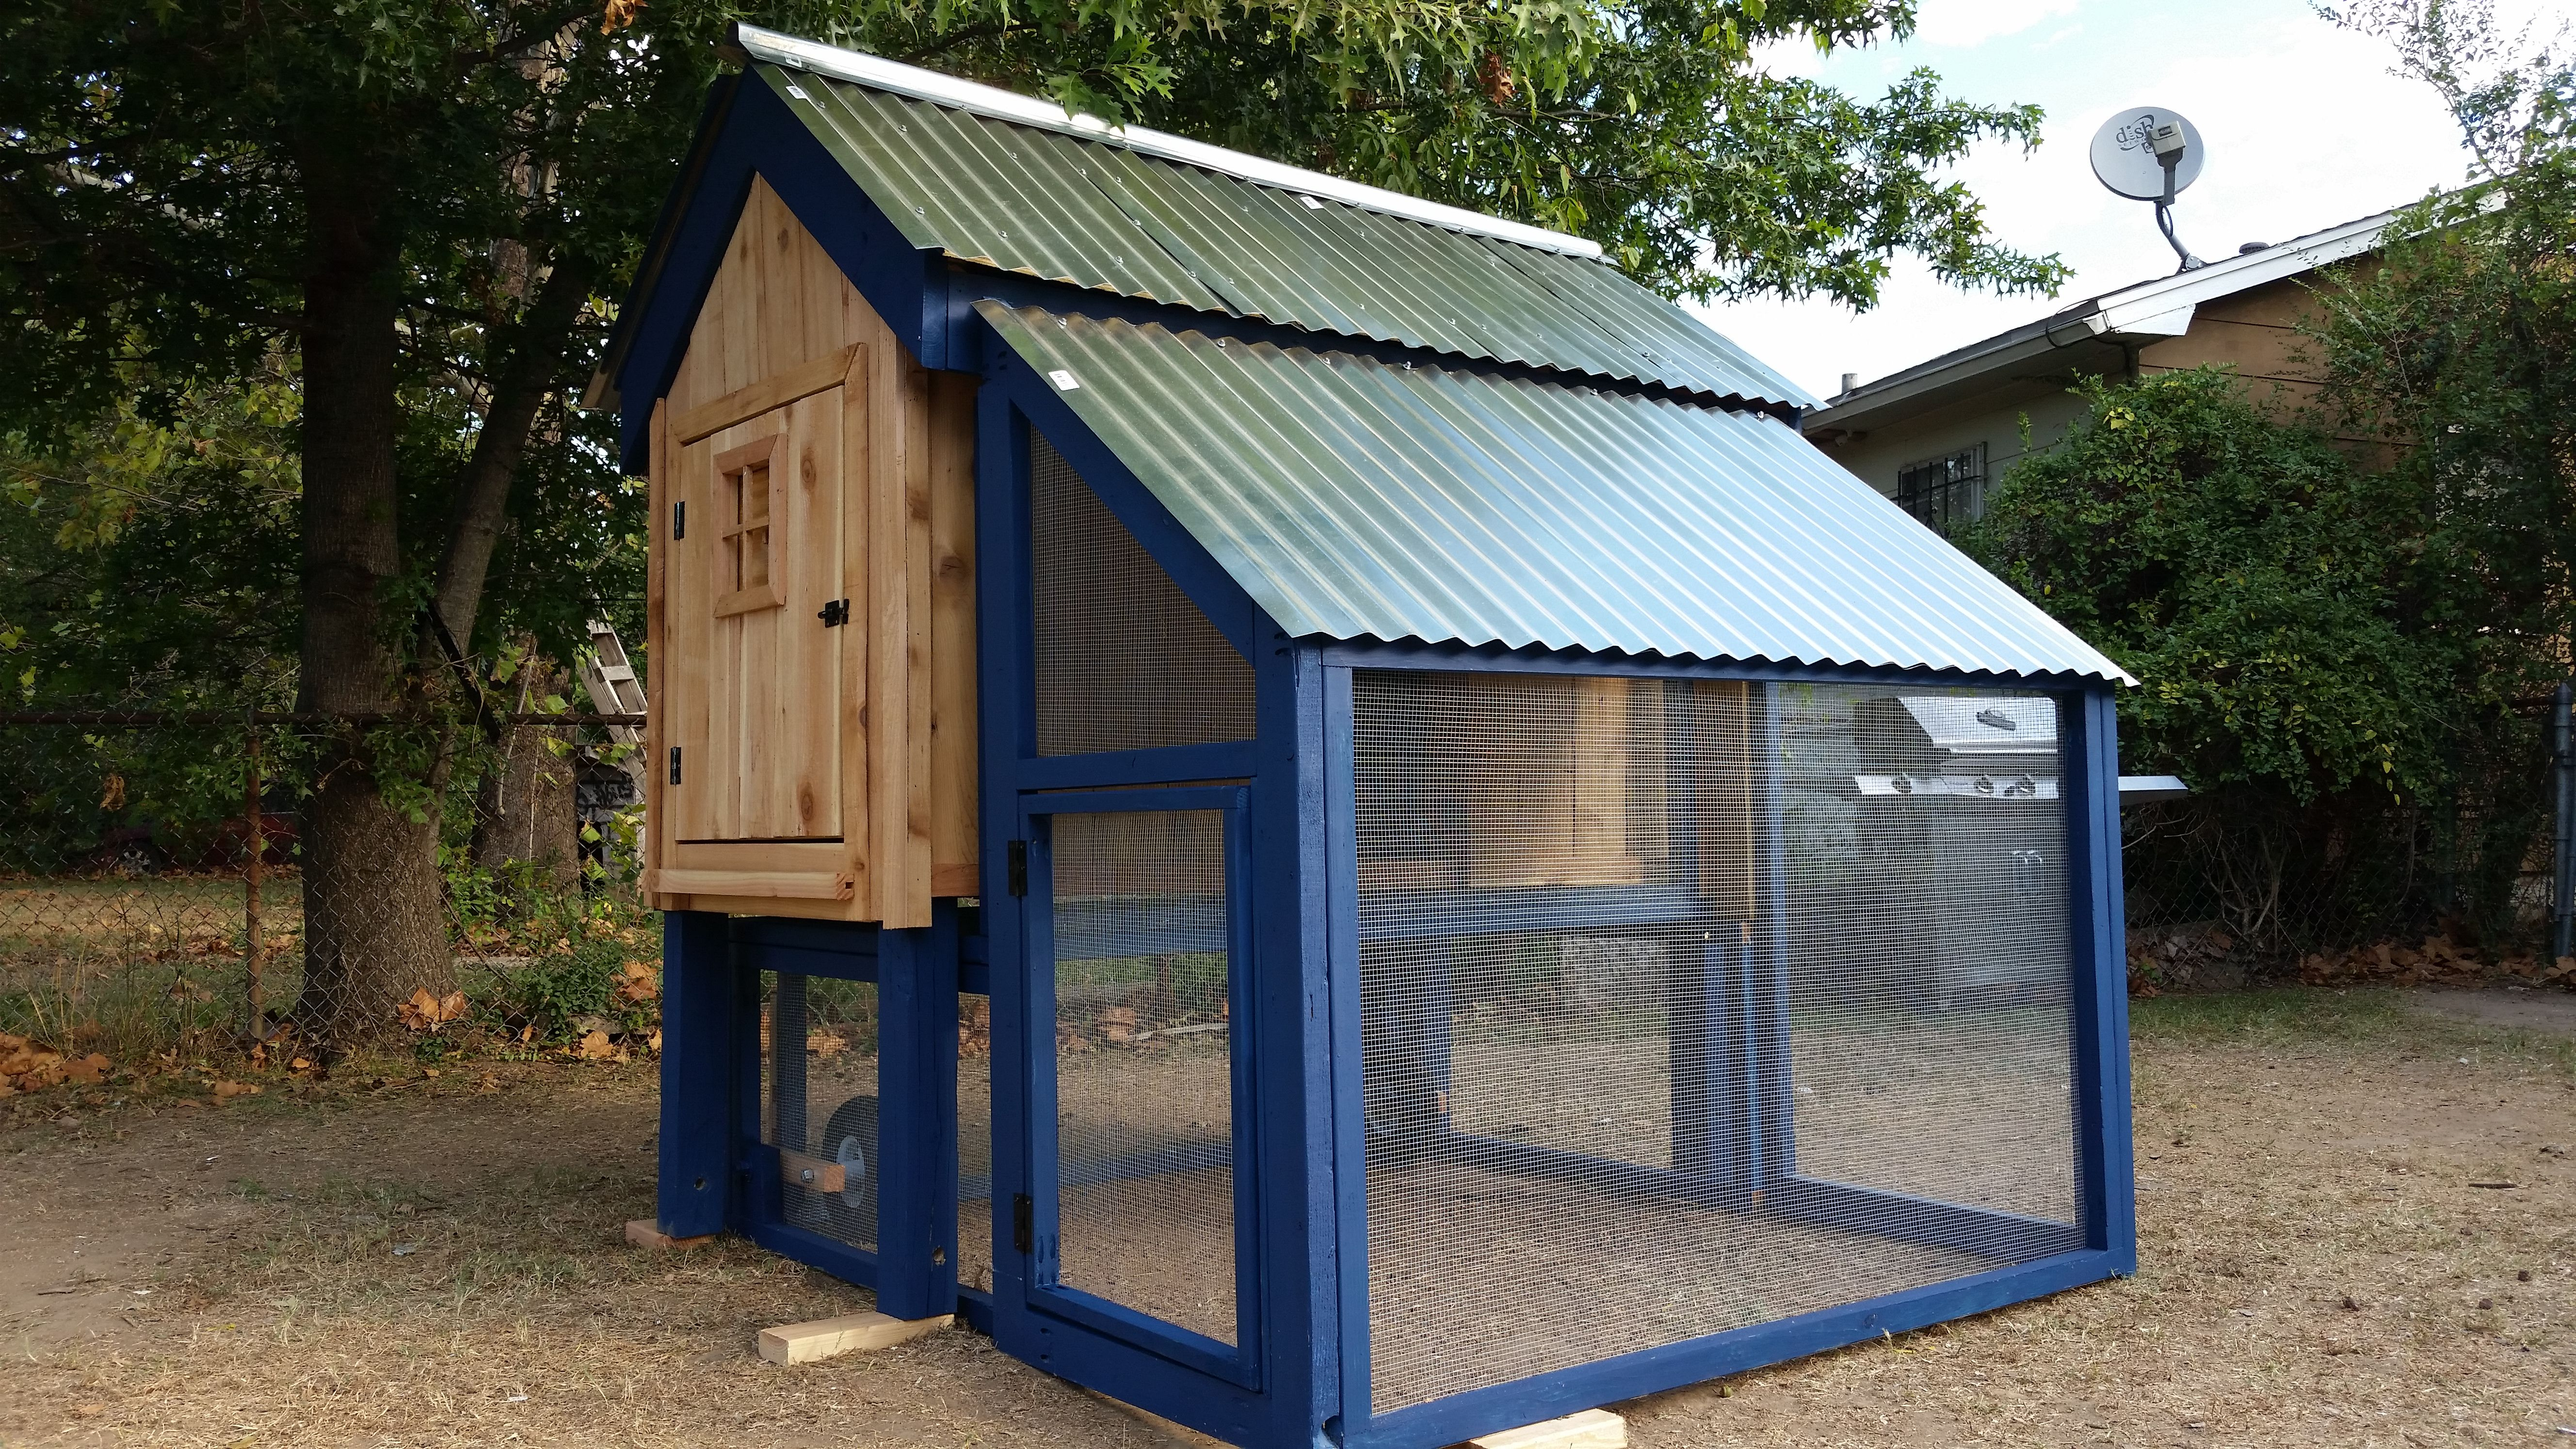 Fancy Chicken Coop Made For 6 Chickens Has Detachable Chicken Run With Retractable Tractor Wheels Beauti Fancy Chicken Coop Fancy Chickens Chicken Plating